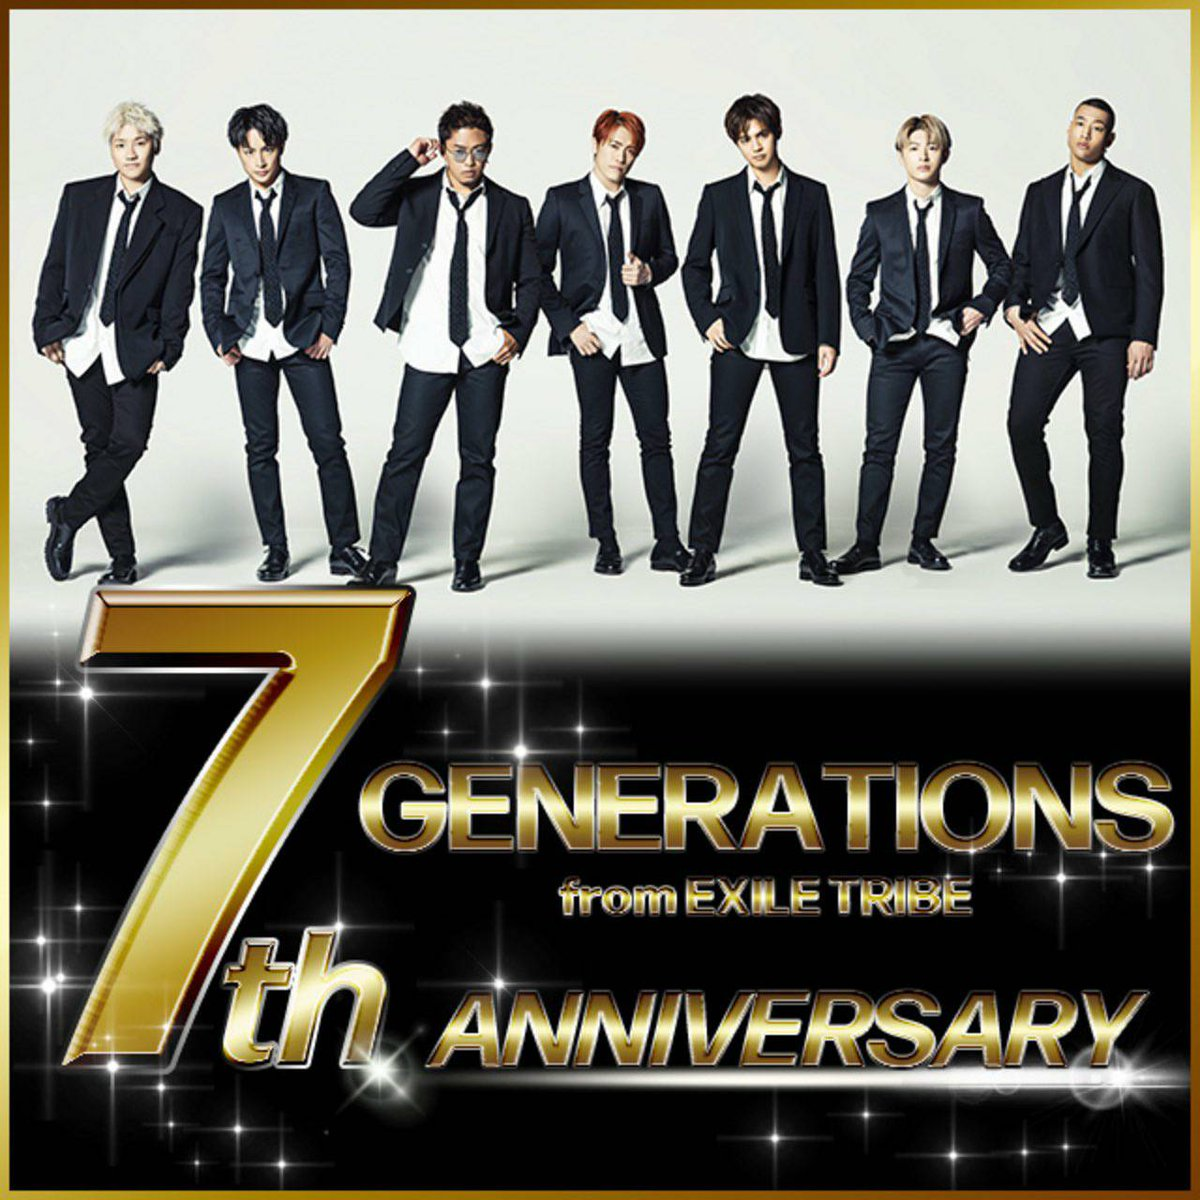 【本日】11/21(木)GENERATIONS from EXILE TRIBE✨ 7th Anniversary ✨#GENE #GENE7周年 7th Anniversary Message BordにMessageを投稿した方限定でSpecial Movieが閲覧可能❗🎥